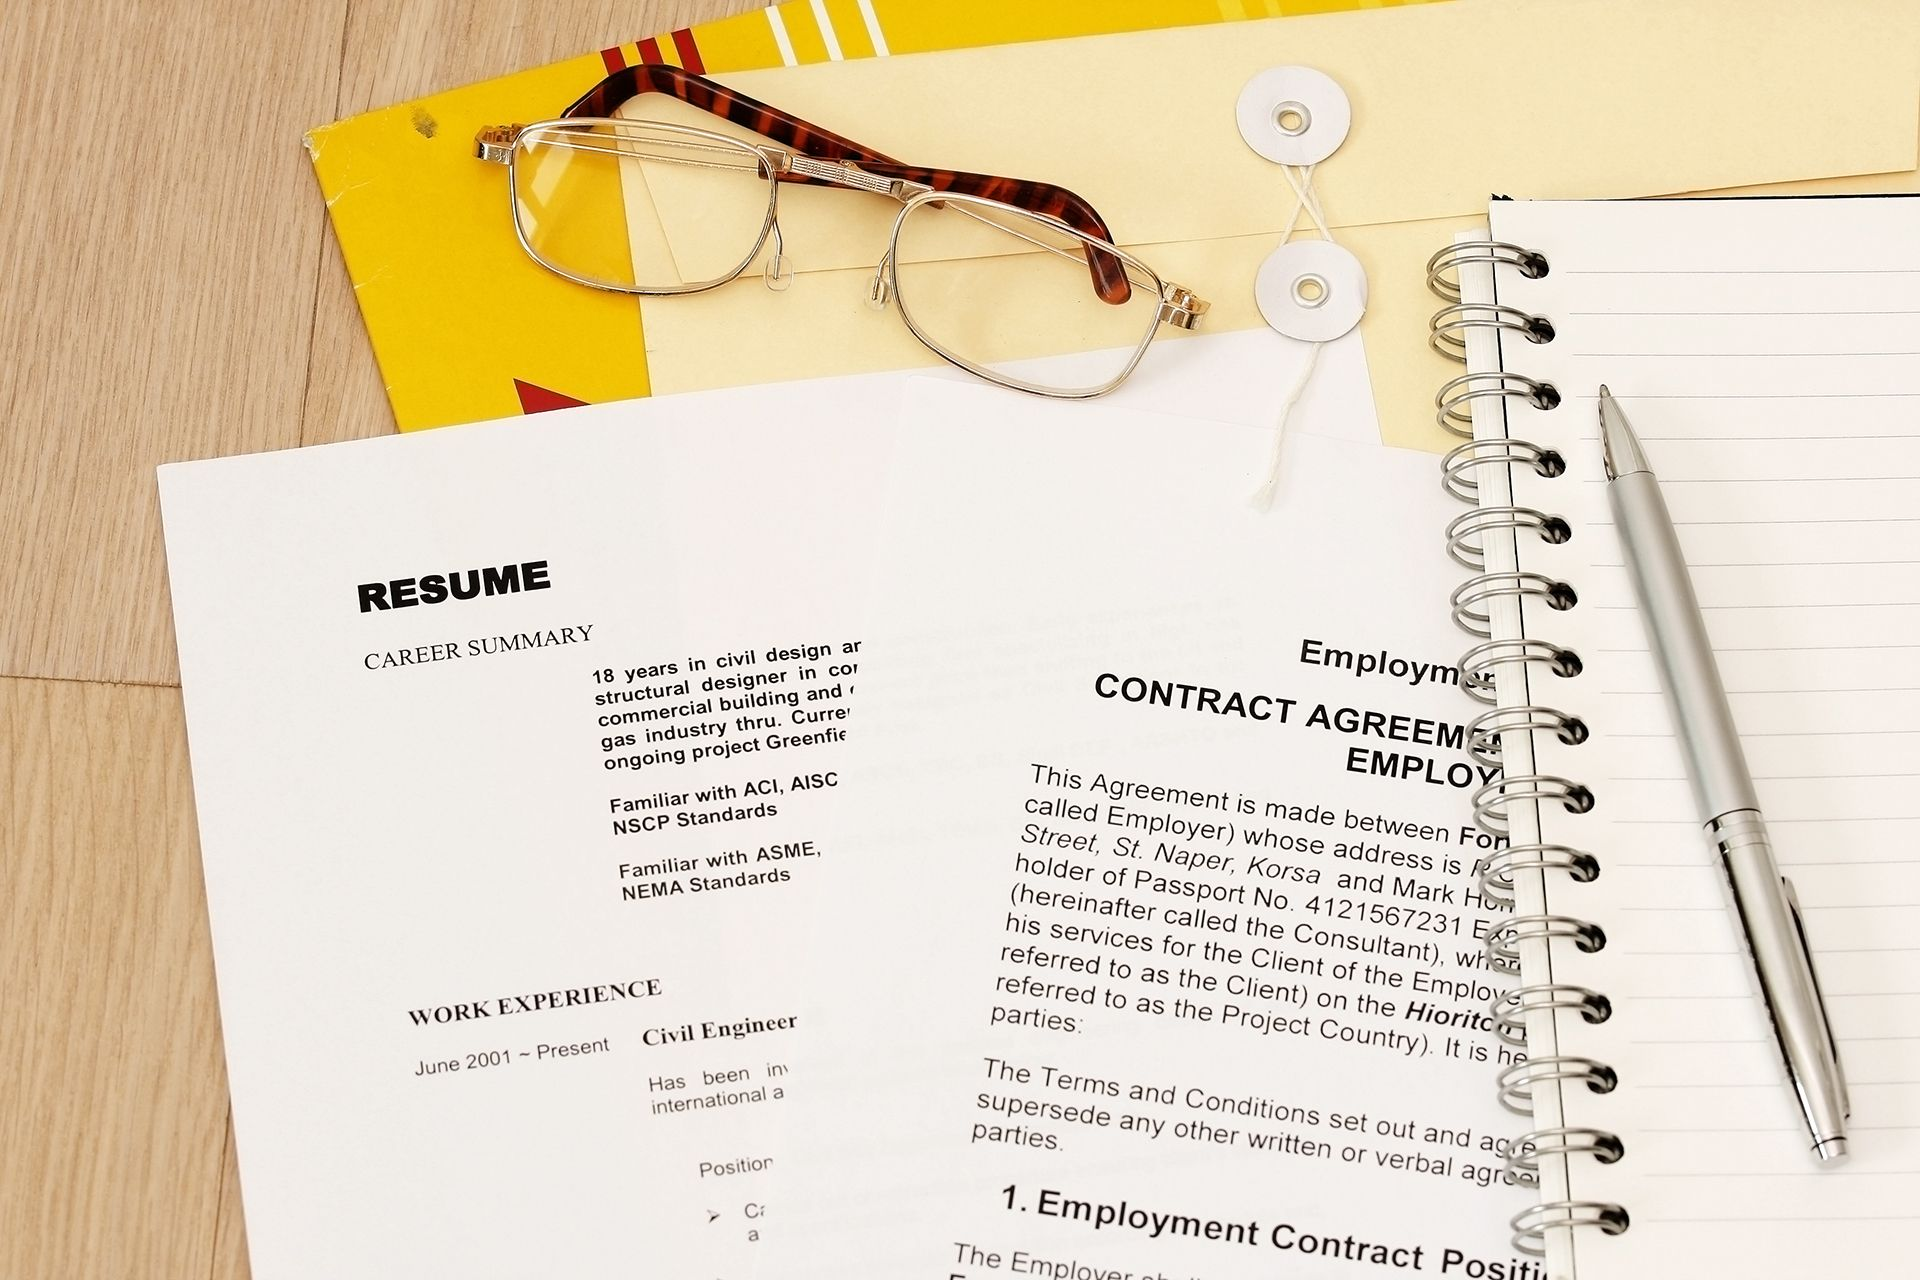 I Professional Resume Writers & Resume Service in 2020